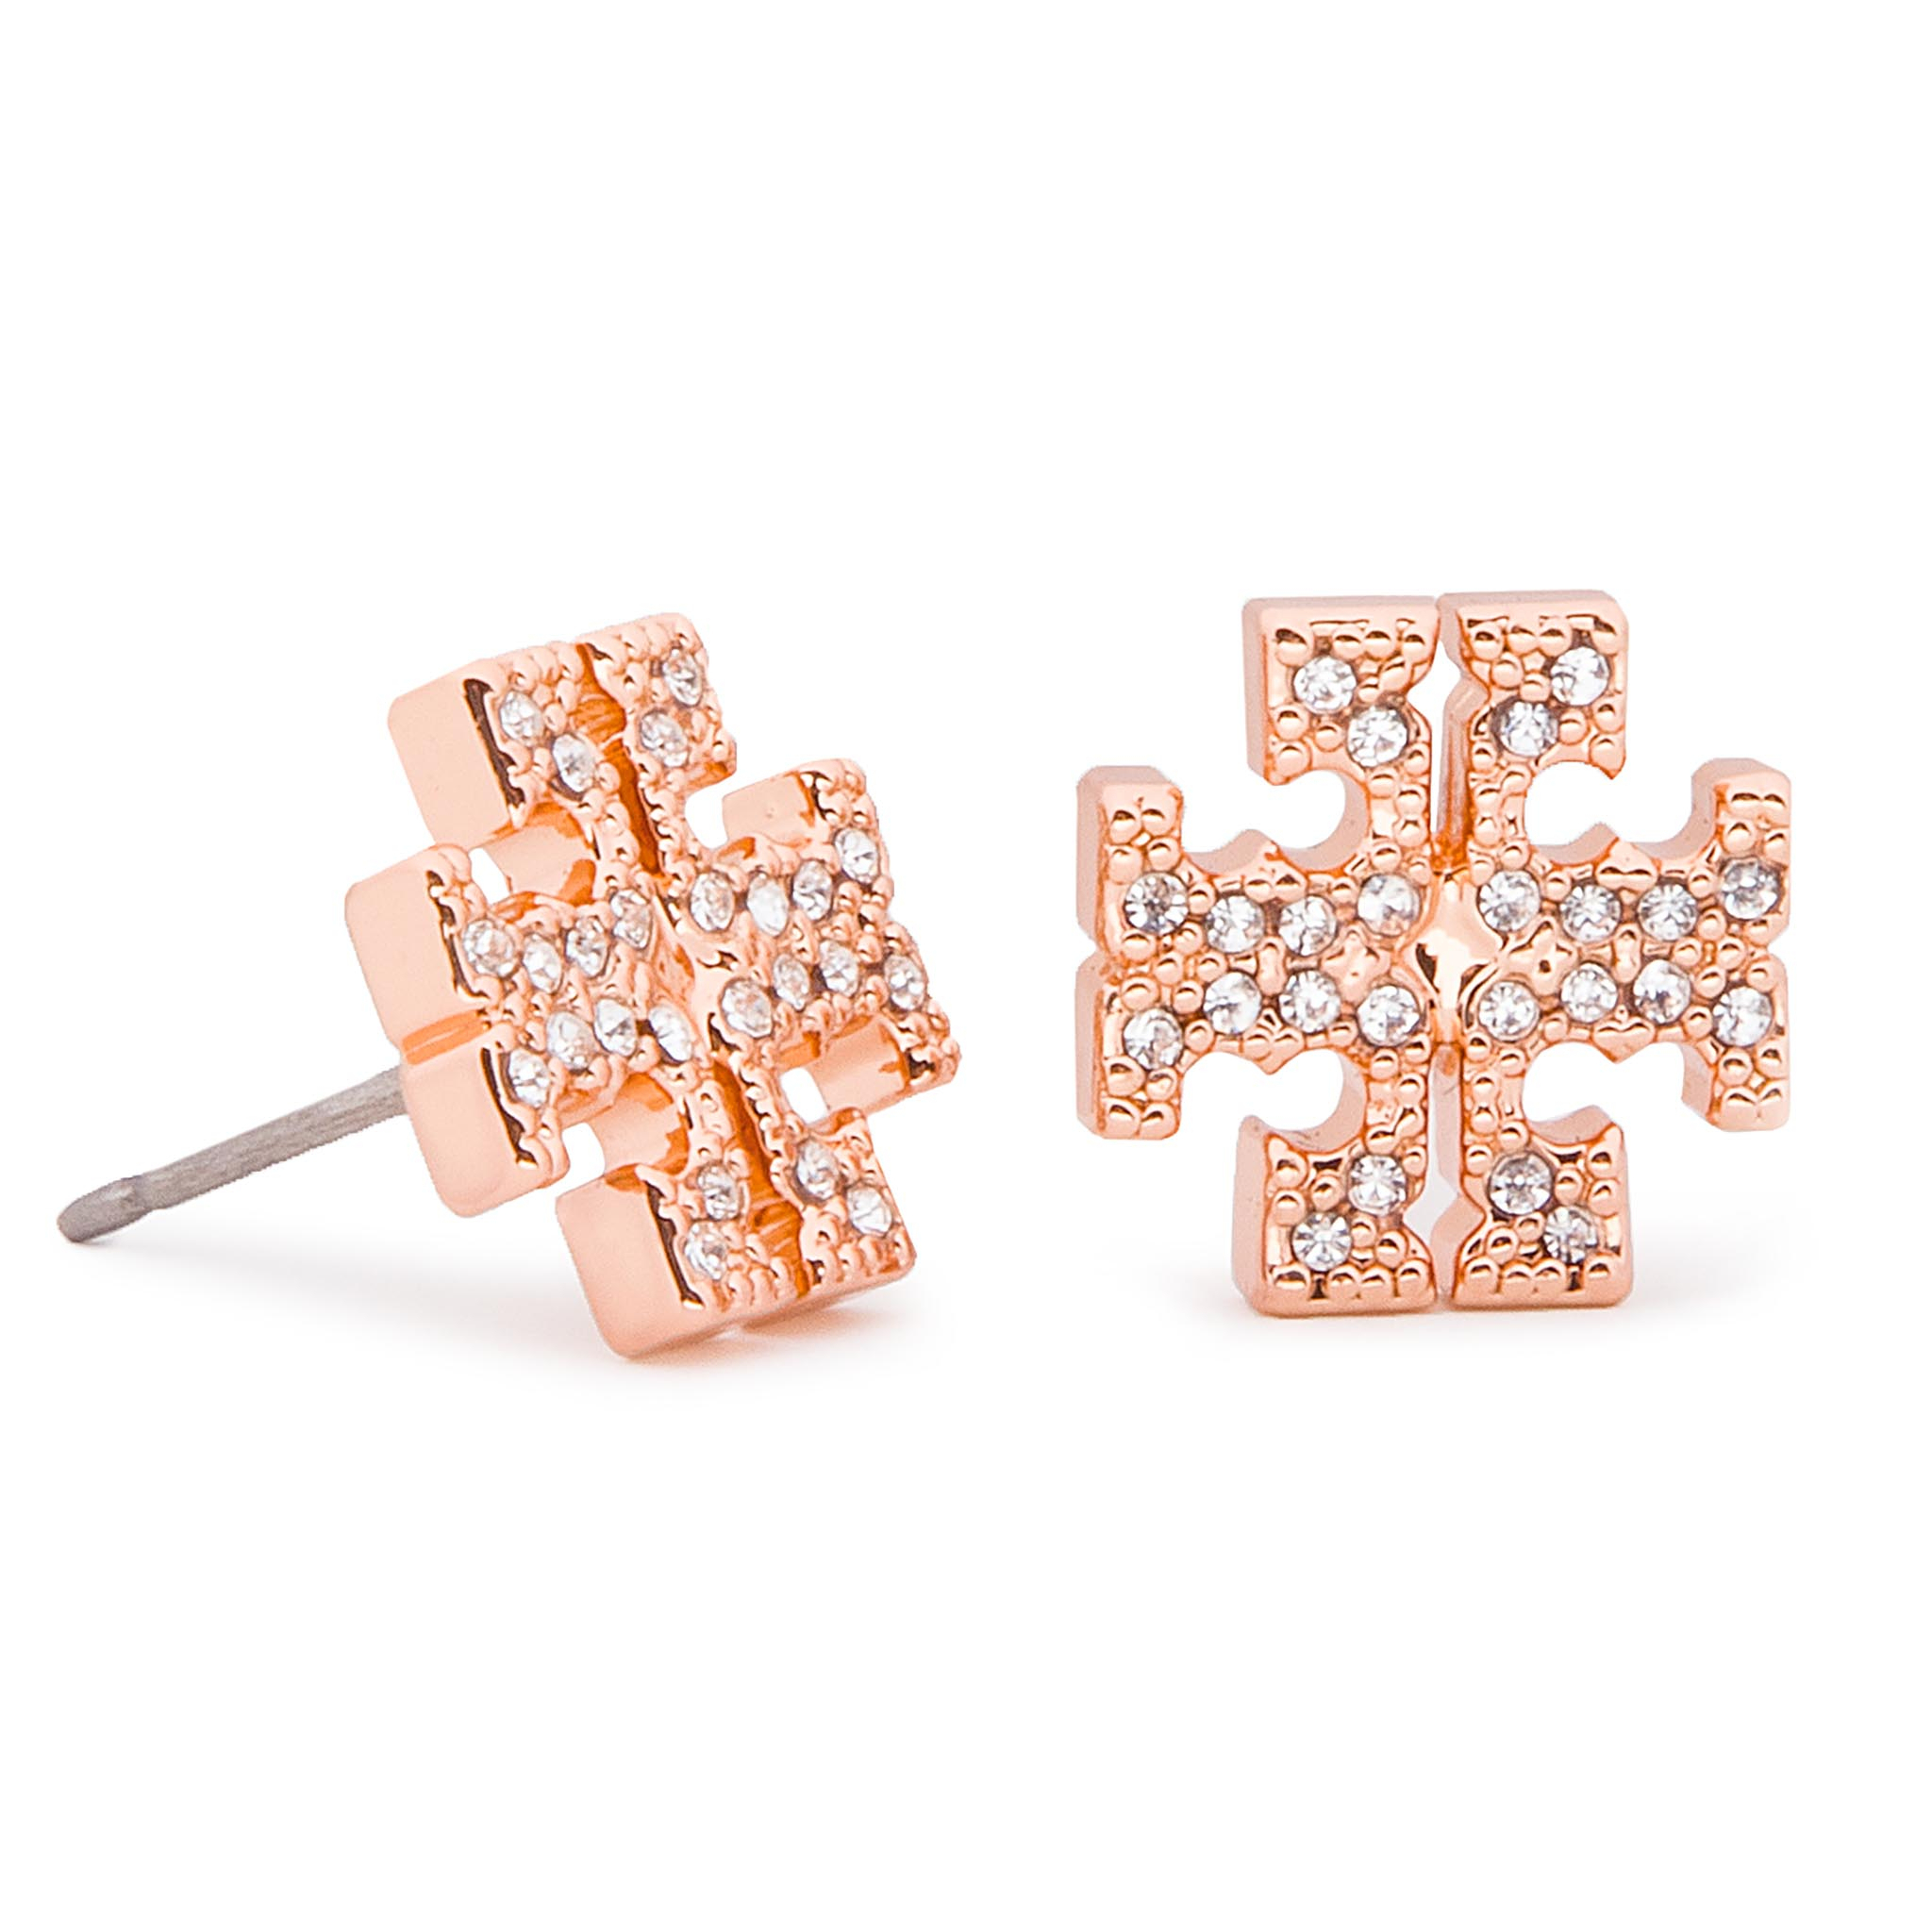 Boucles d'oreilles TORY BURCH - Crystal Logo Stud Earring 53423 Rose Gold/Crystal 696